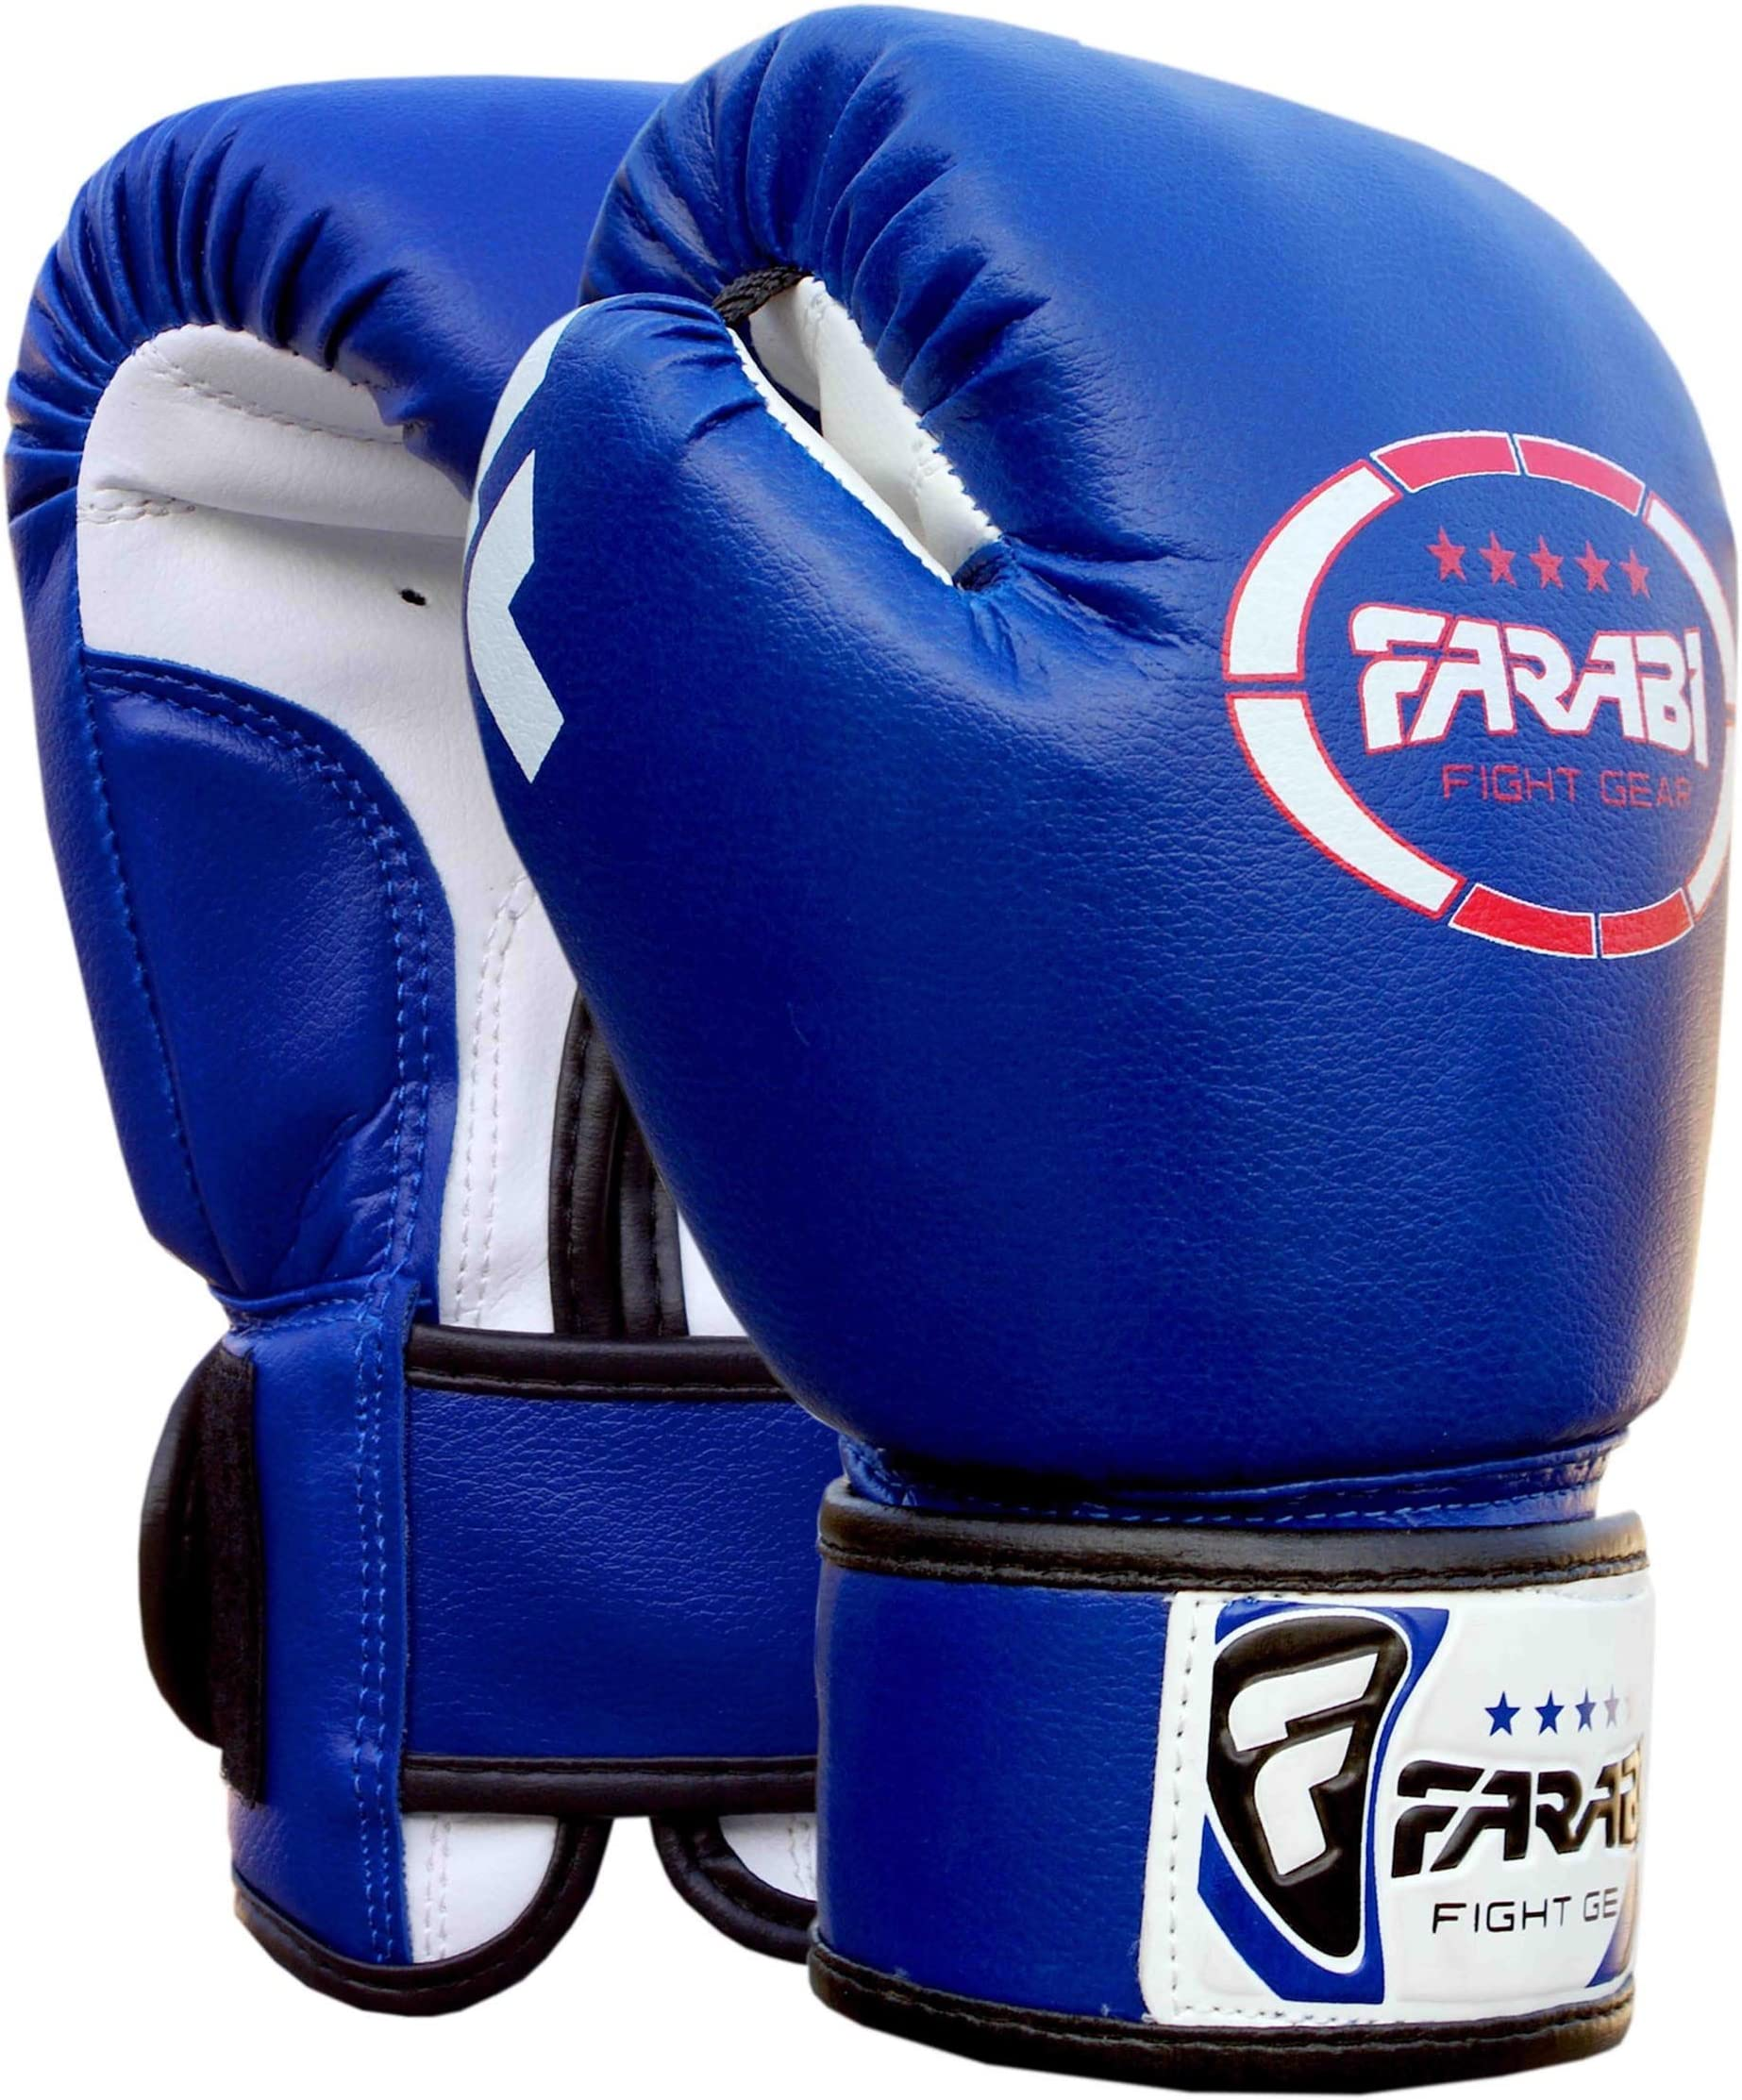 Farabi Sports Kids Boxing Gloves 4-oz Kickboxing Muaythai Punching Bag Training Gloves Age 4-8 Year (Black, 4-oz (Age 4-8) (Blue, 4-OZ)